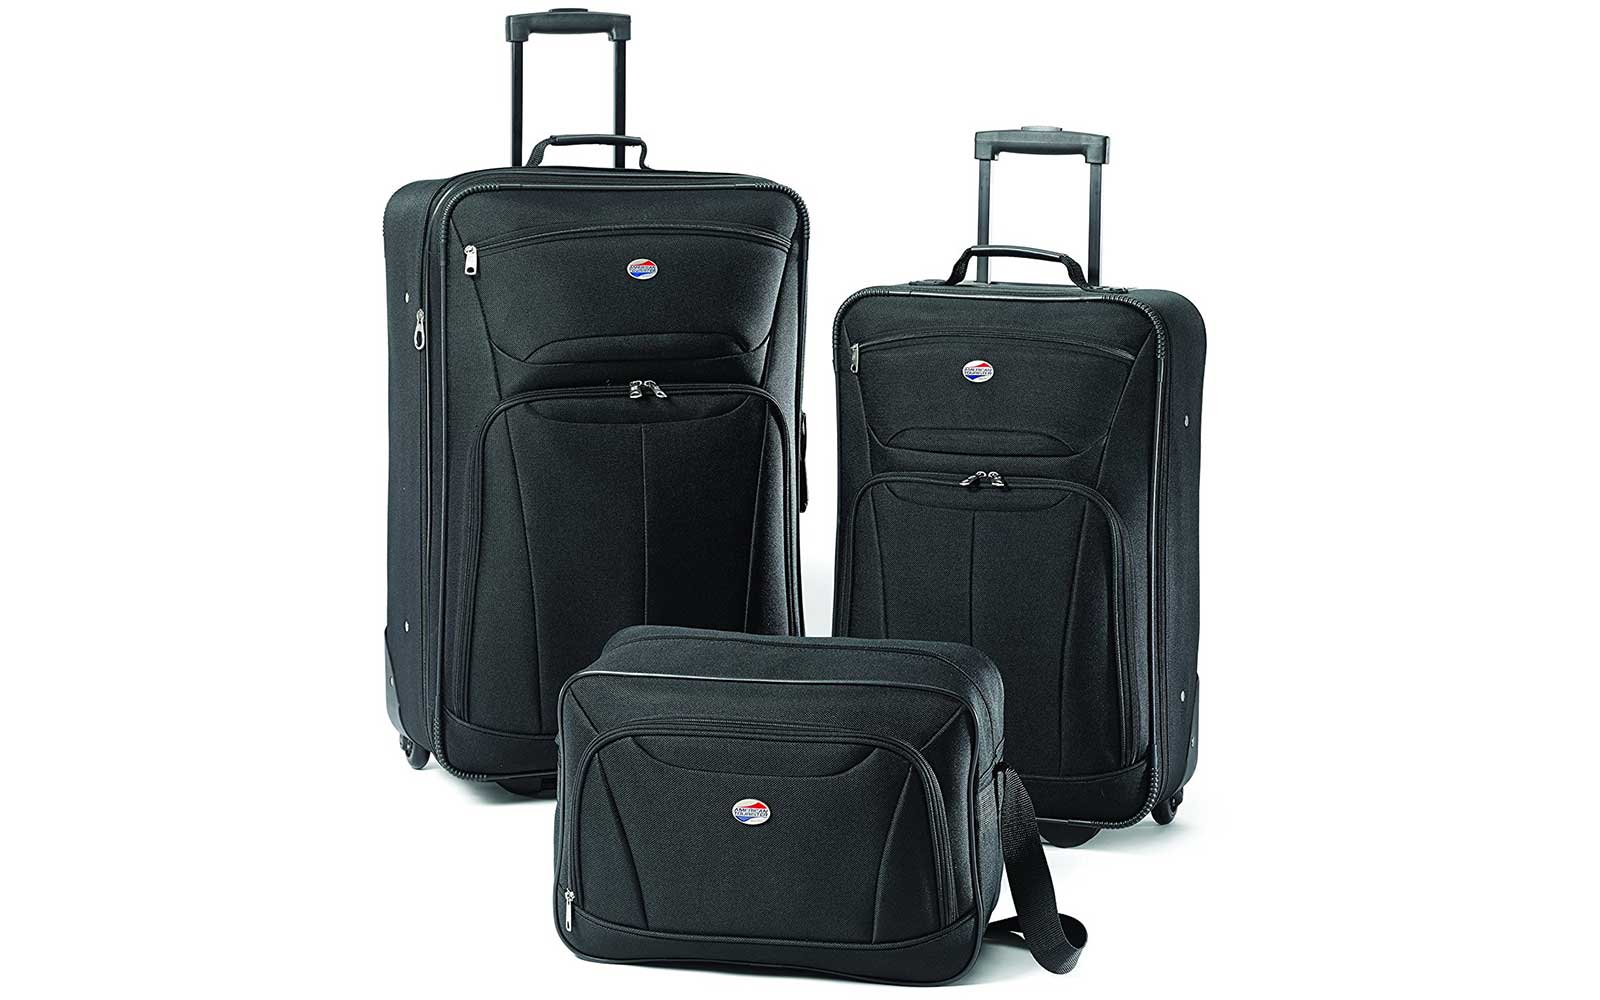 American Tourister Luggage Fieldbrook II 3-Piece Set